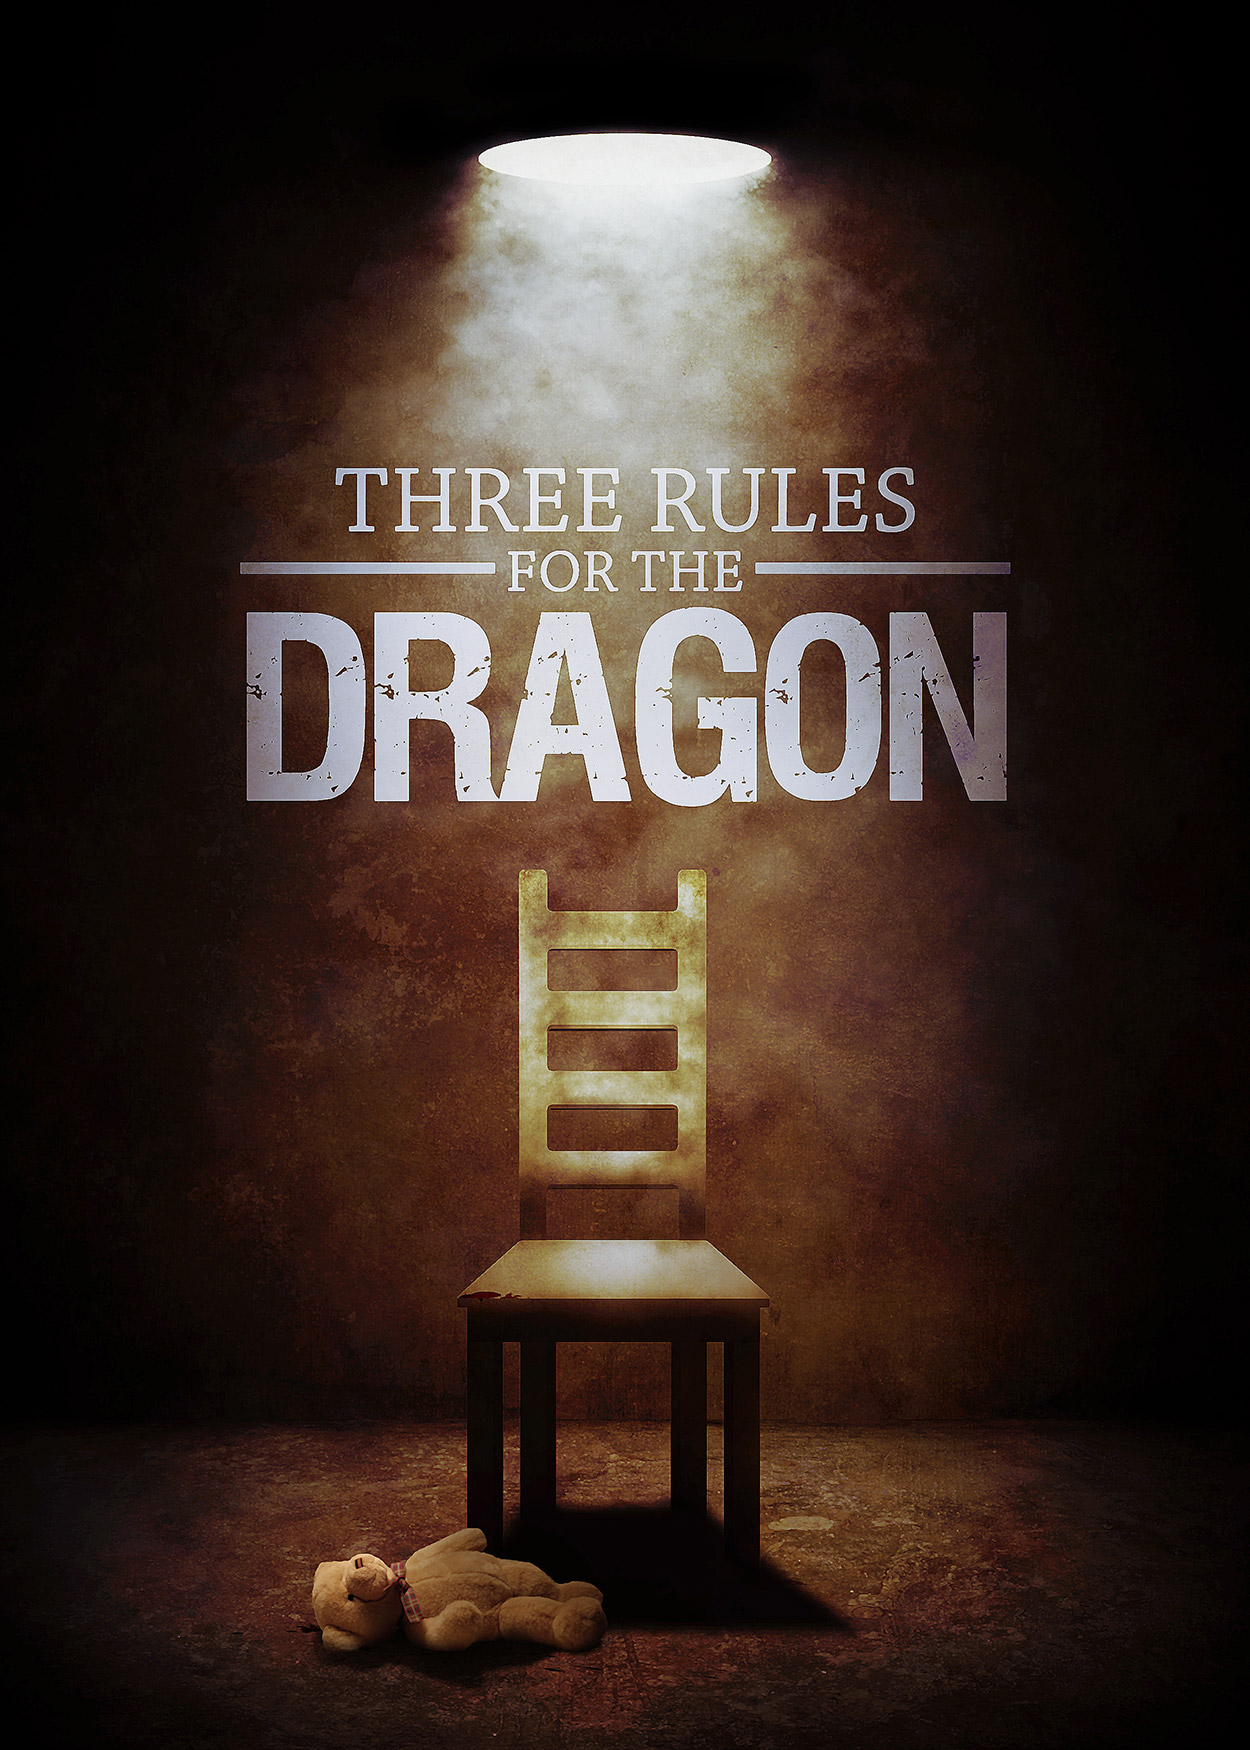 Key Art from Three Rules for the Dragon (2016). A chair is at the center of the image. A single light from the ceiling shines down onto the chair. A teddy bear has been left on the floor by the legs of the chair.